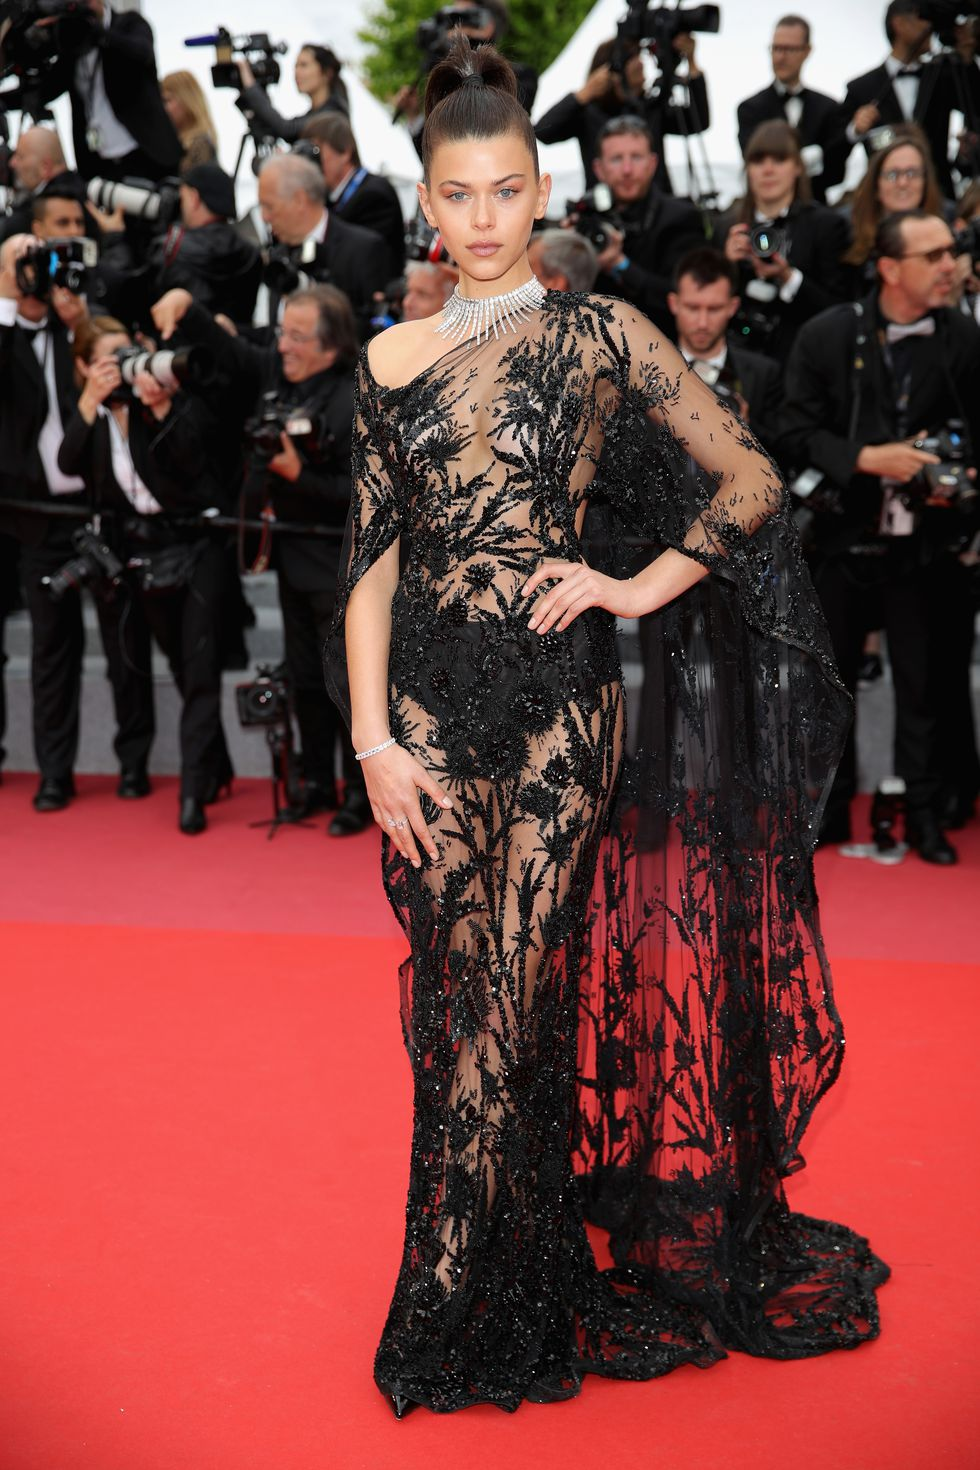 The Red Carpet Gowns At Cannes Film Festival So Beautiful